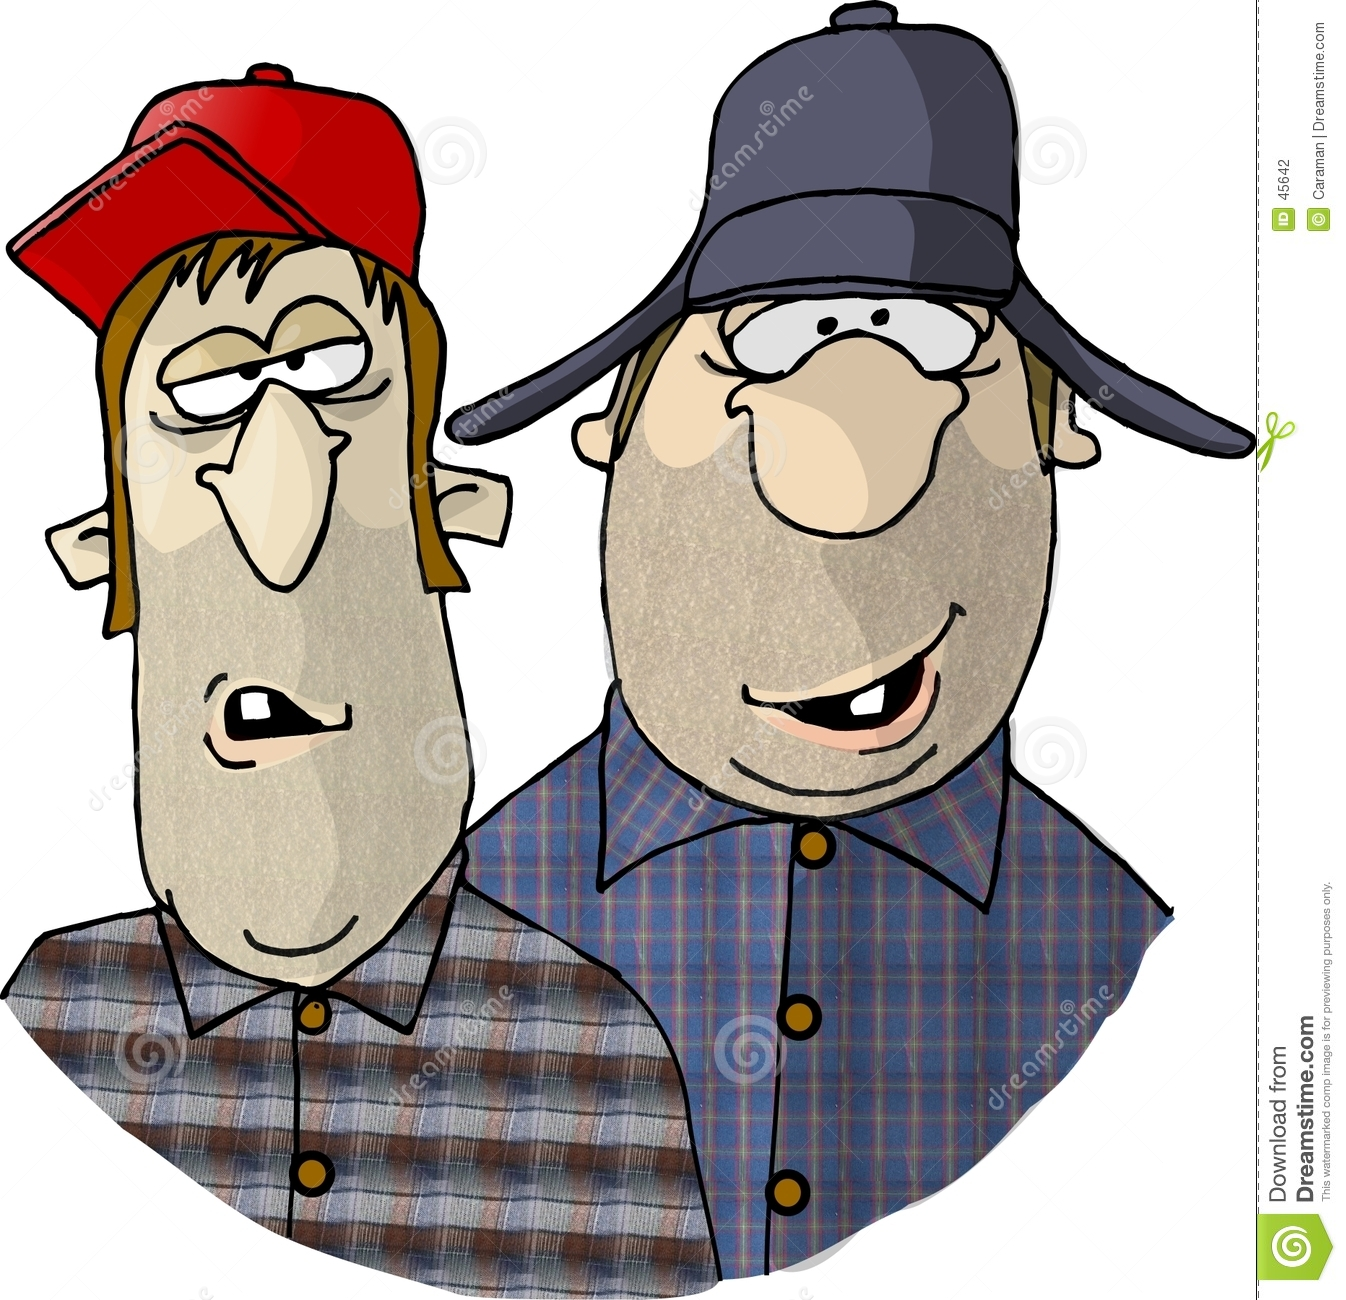 hight resolution of two rednecks this illustration that i created depicts two men with redneck tendencies royalty free